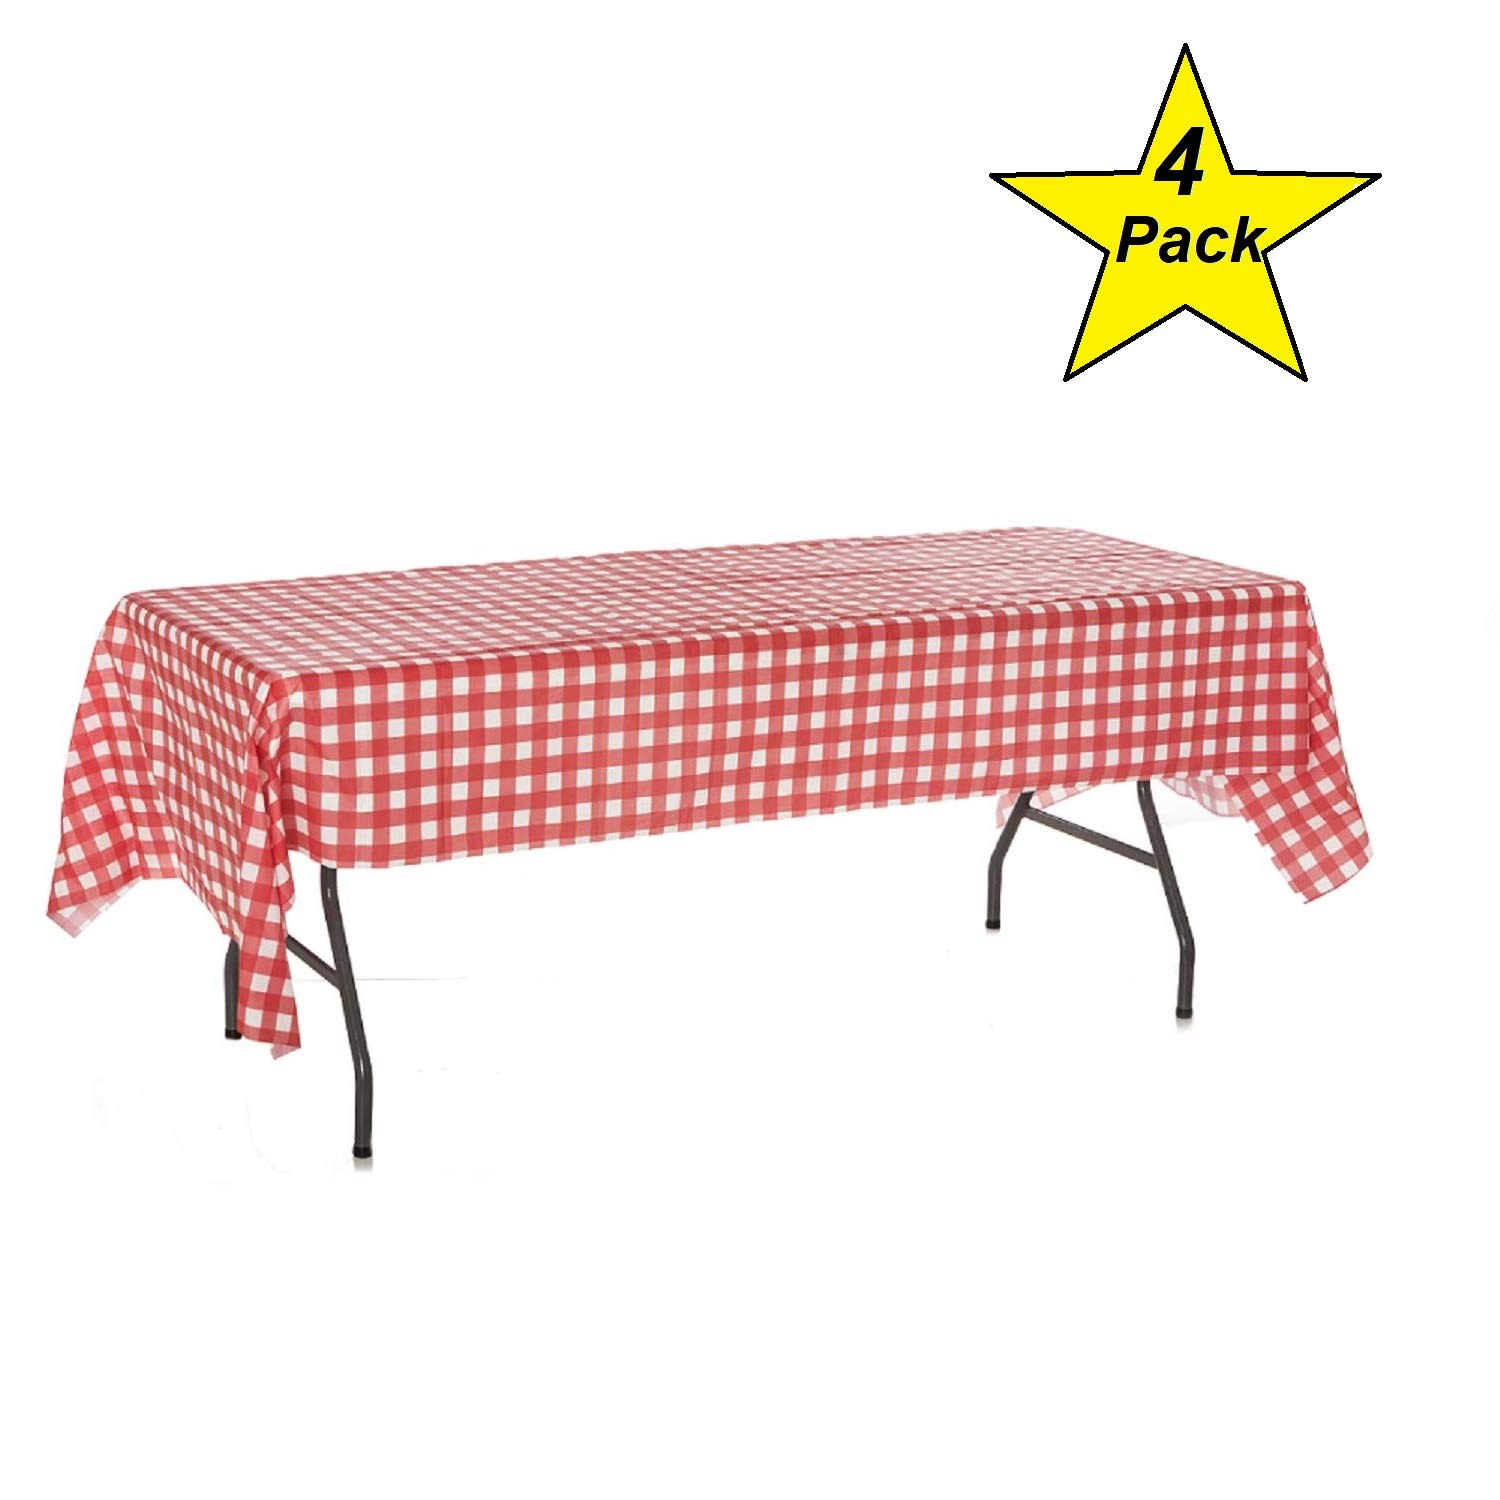 Oojami Pack of 4 Plastic Red and White Checkered Tablecloths - 4 Pack - Picnic Table Covers by Oojami